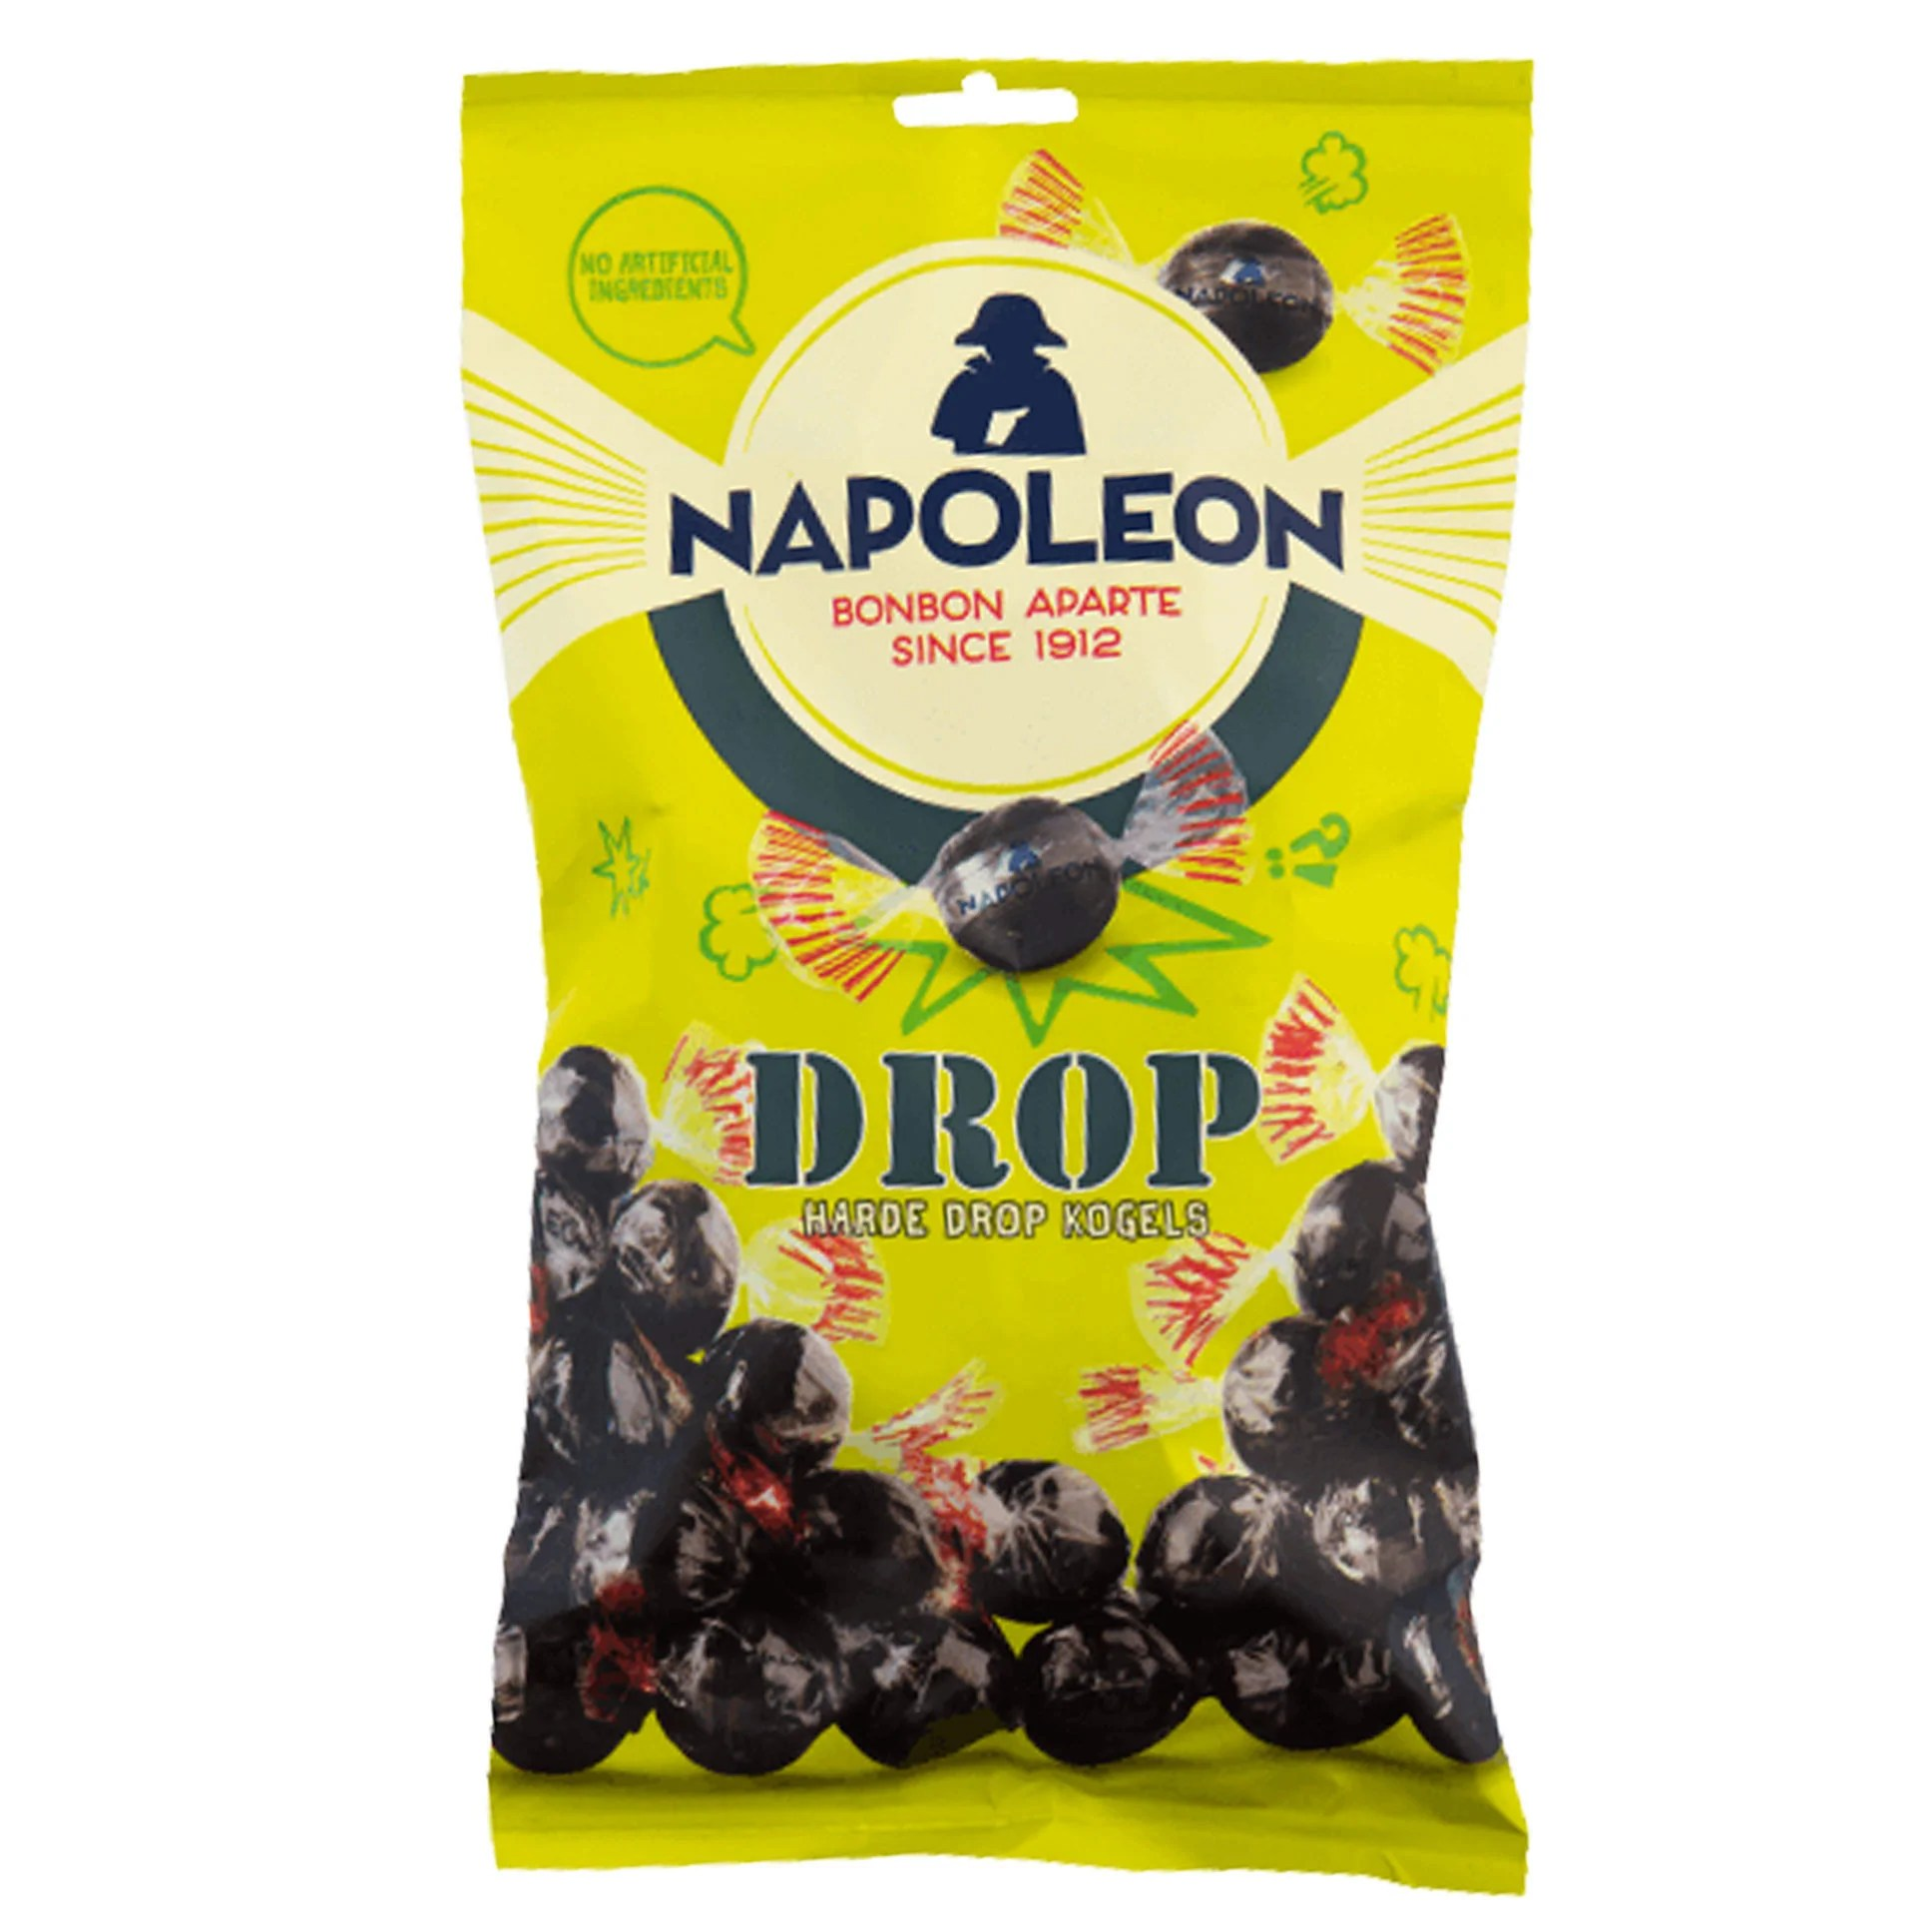 Napoleon Hard Candy - 5.29oz 7.4 Bags Snyder'